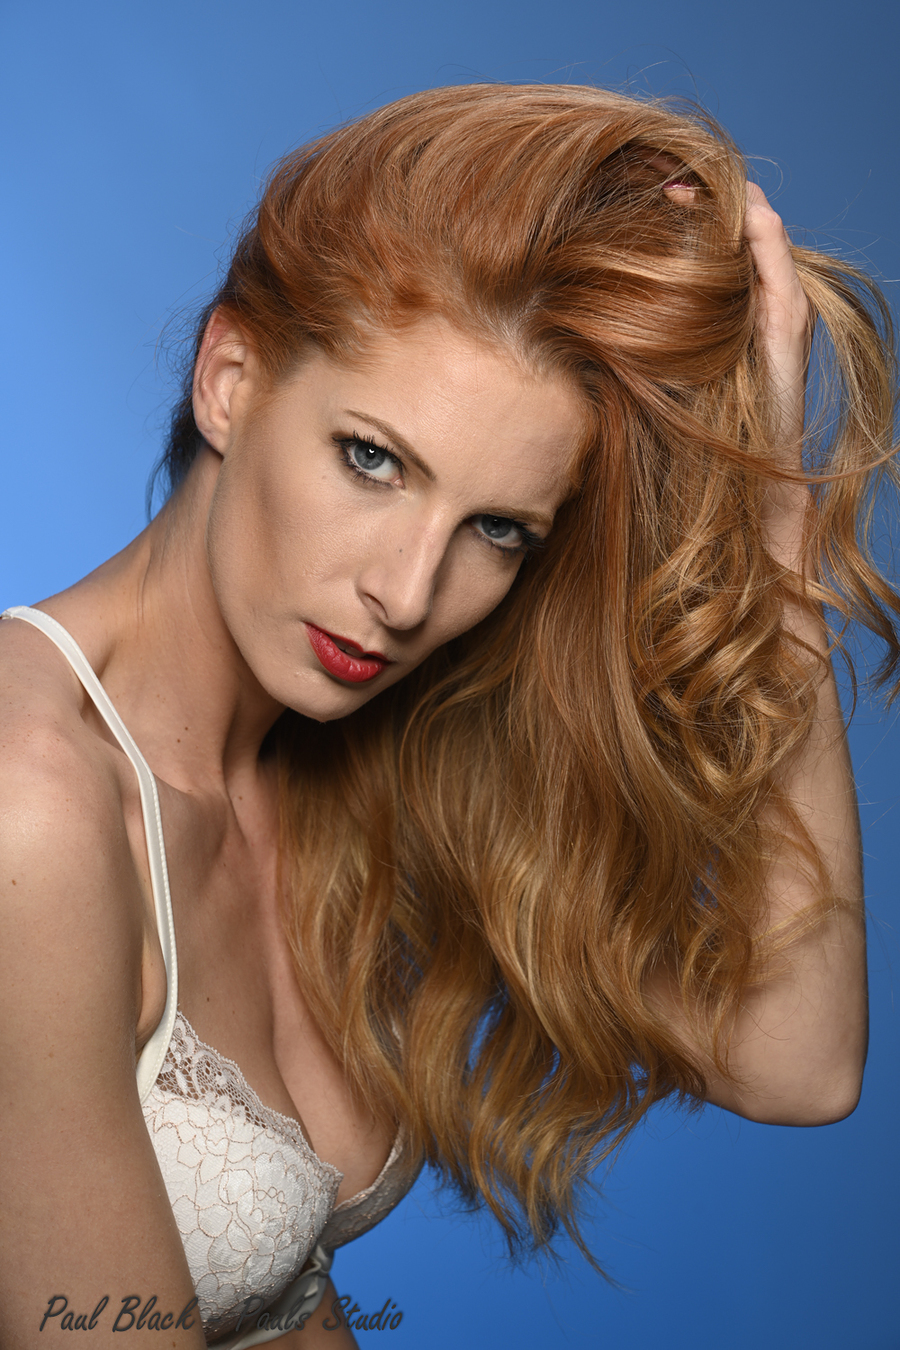 My New Hair Colour / Photography by Pauls-Studio, Model Rebecca Leah, Taken at Pauls-Studio / Uploaded 8th June 2019 @ 04:27 PM